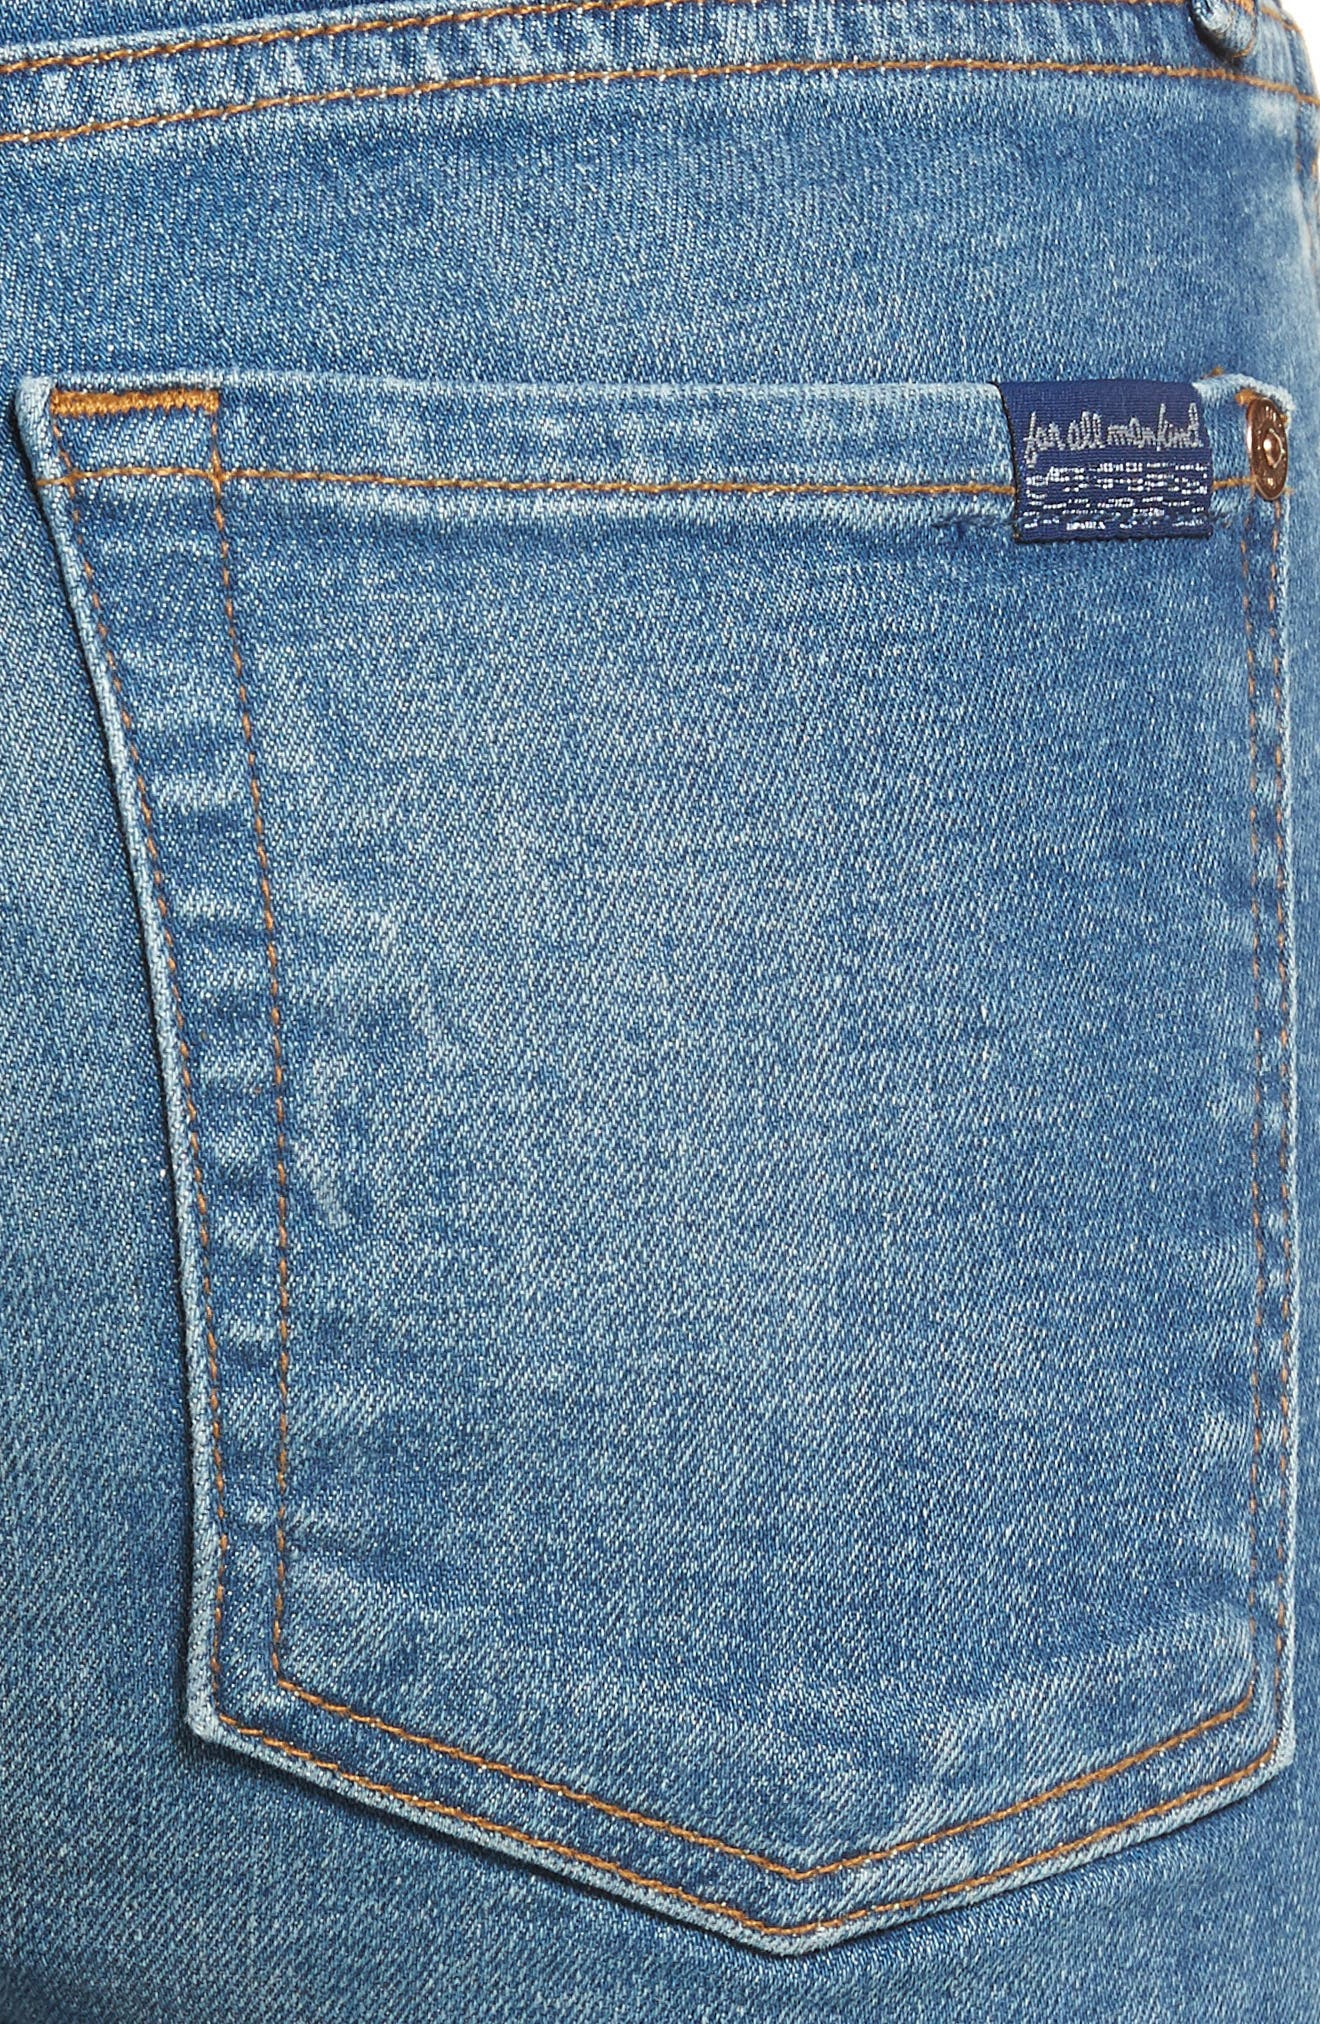 Dylan Straight Leg Jeans,                             Alternate thumbnail 4, color,                             400